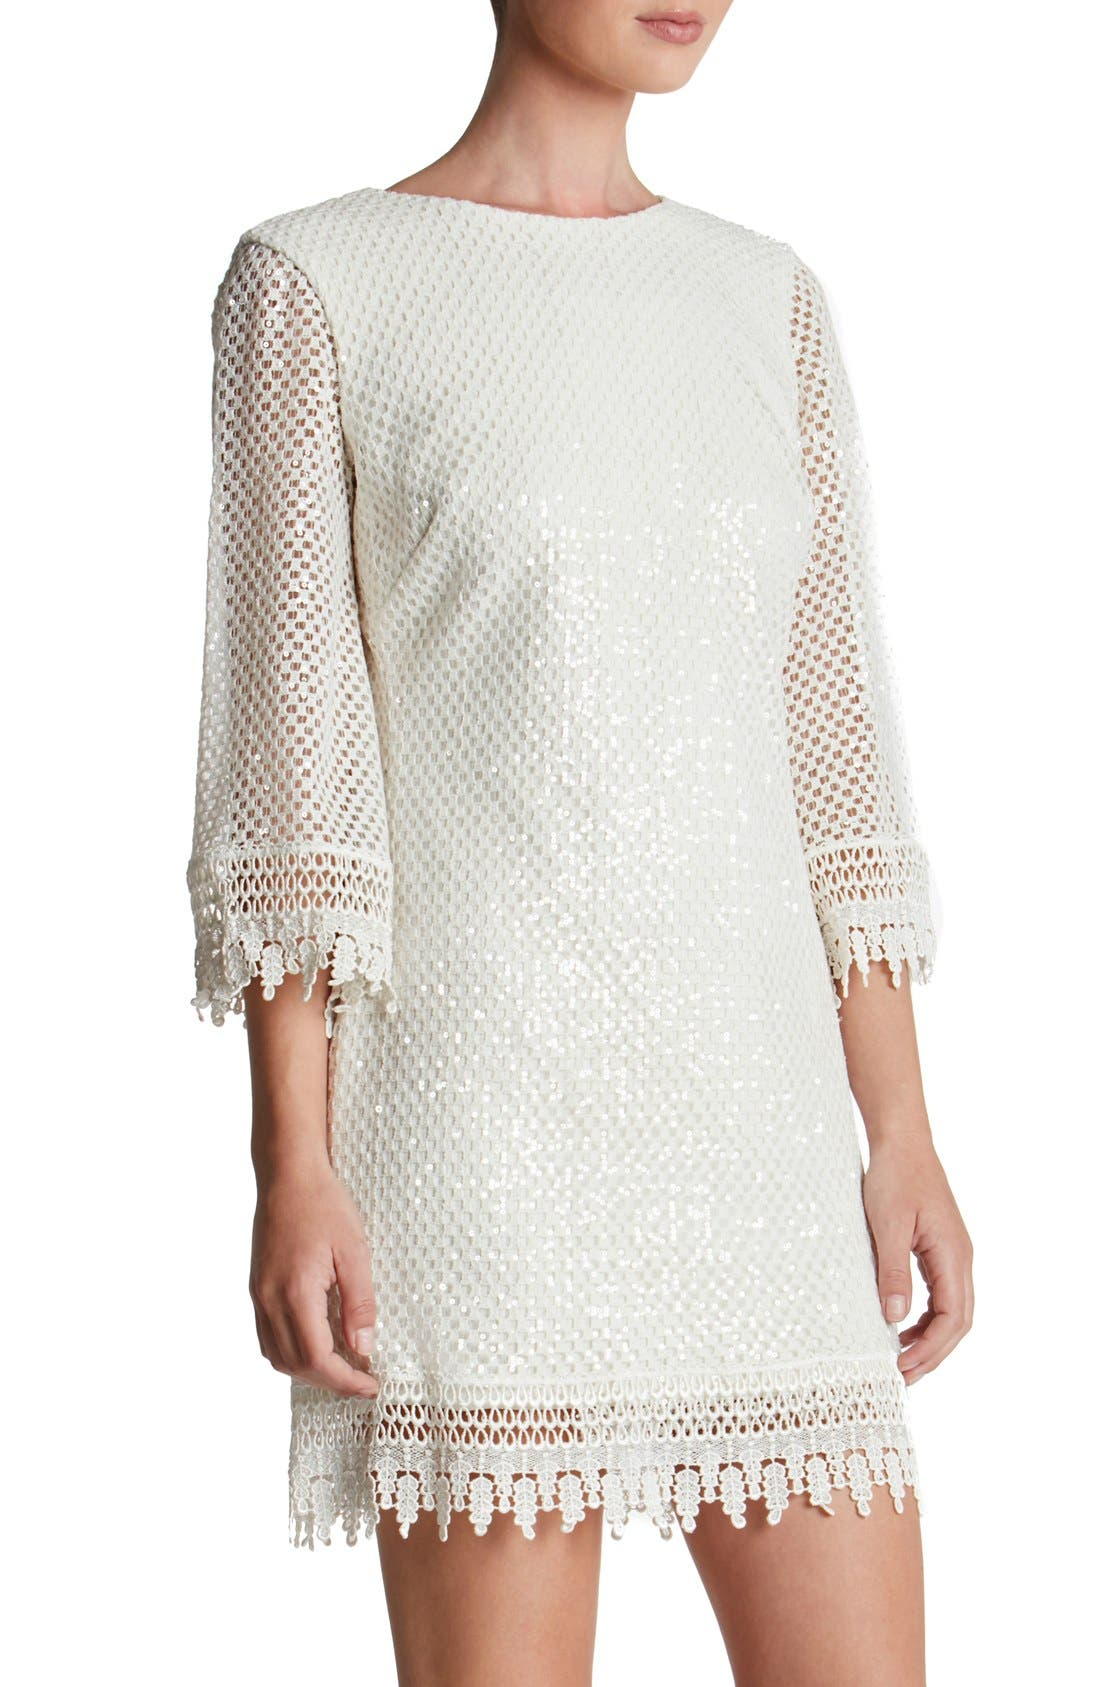 'Phoebe' Sequin Crochet Shift Dress,                             Alternate thumbnail 4, color,                             White